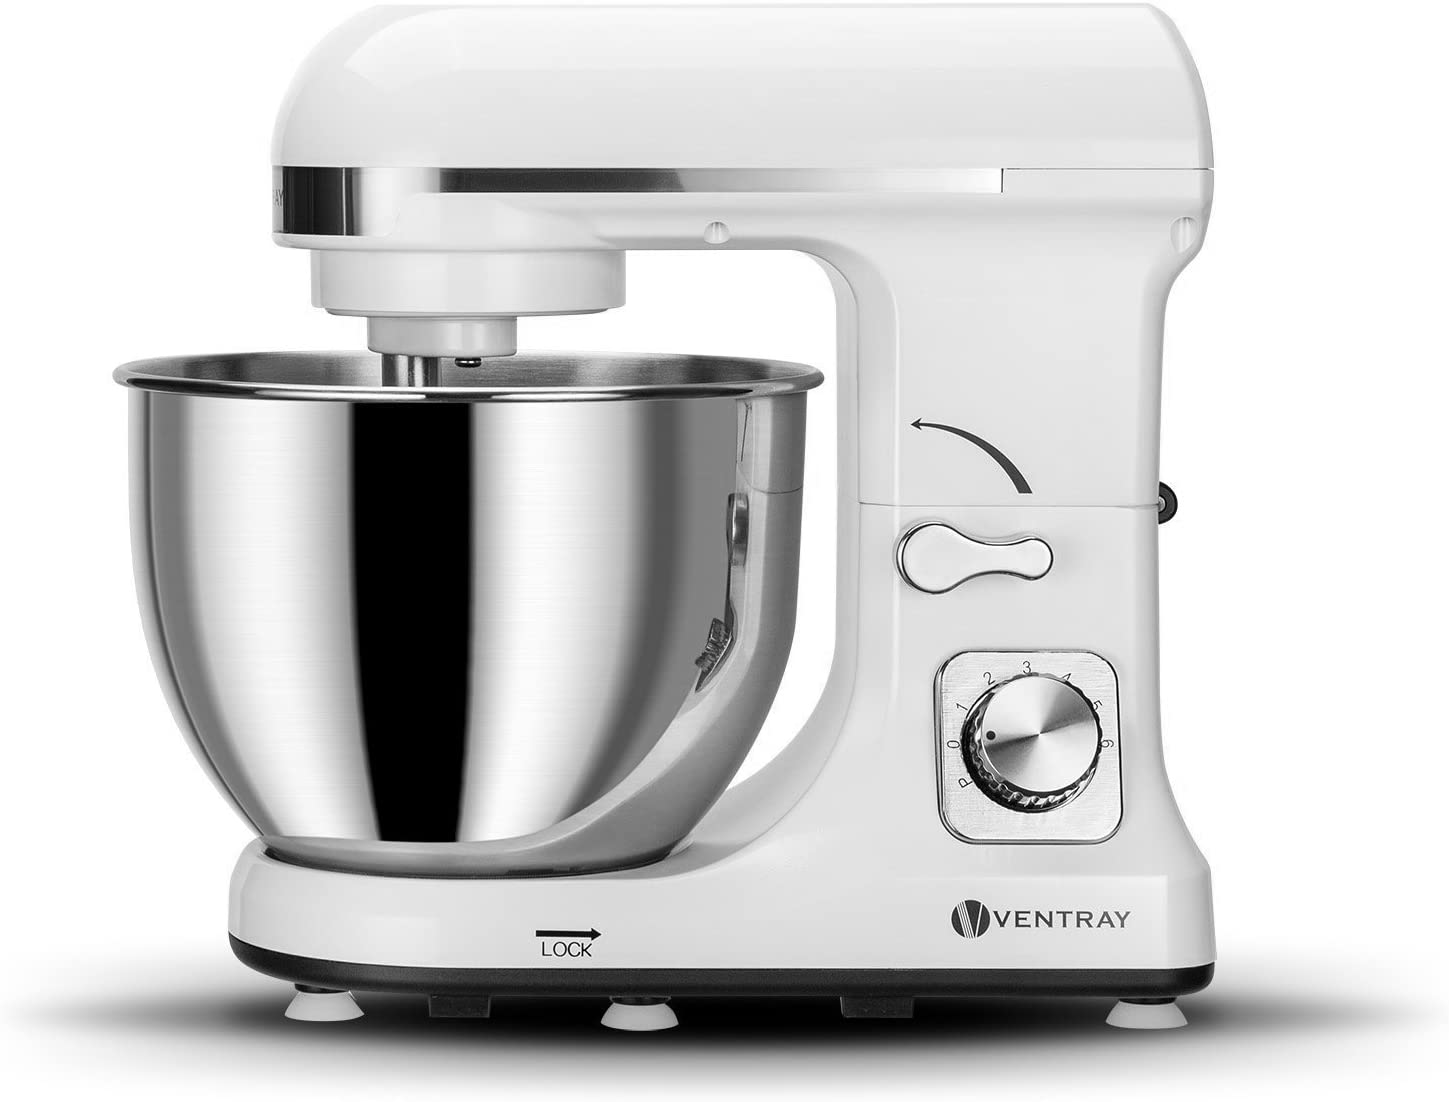 Ventray Stand Mixer 6-Speed 4.5-Quart Stainless Steel Bowl with Pouring Shield – White